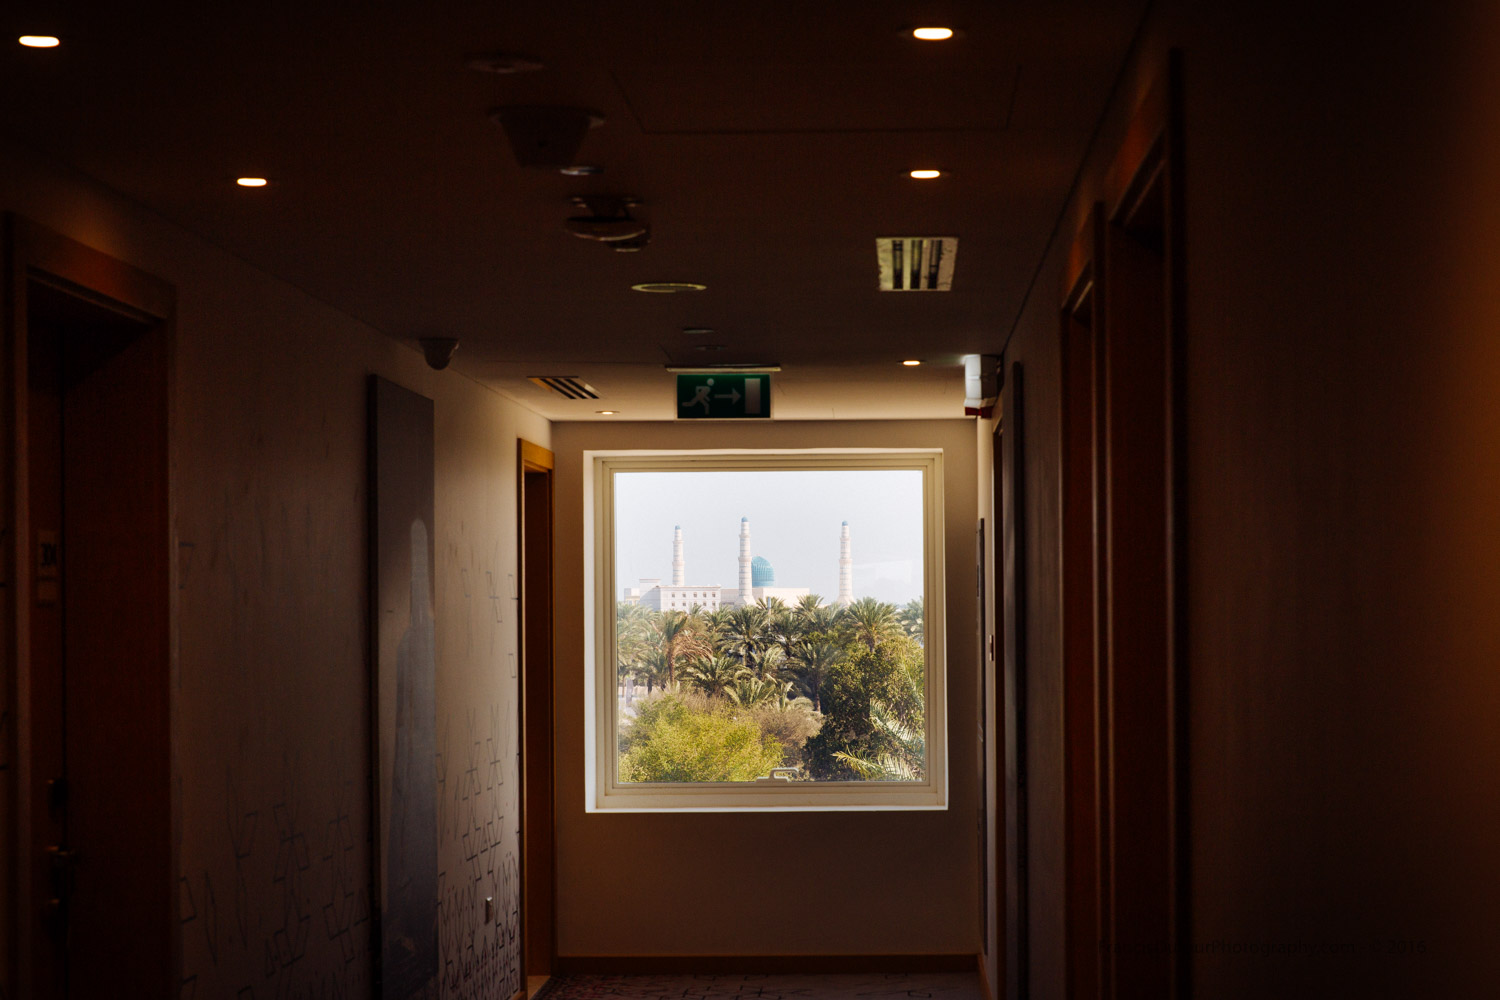 Like a luminous painting hanged on the wall, the Sultan Qaboos Mosque seen from a corridor ar Mercure Hotel (Sohar, Oman).